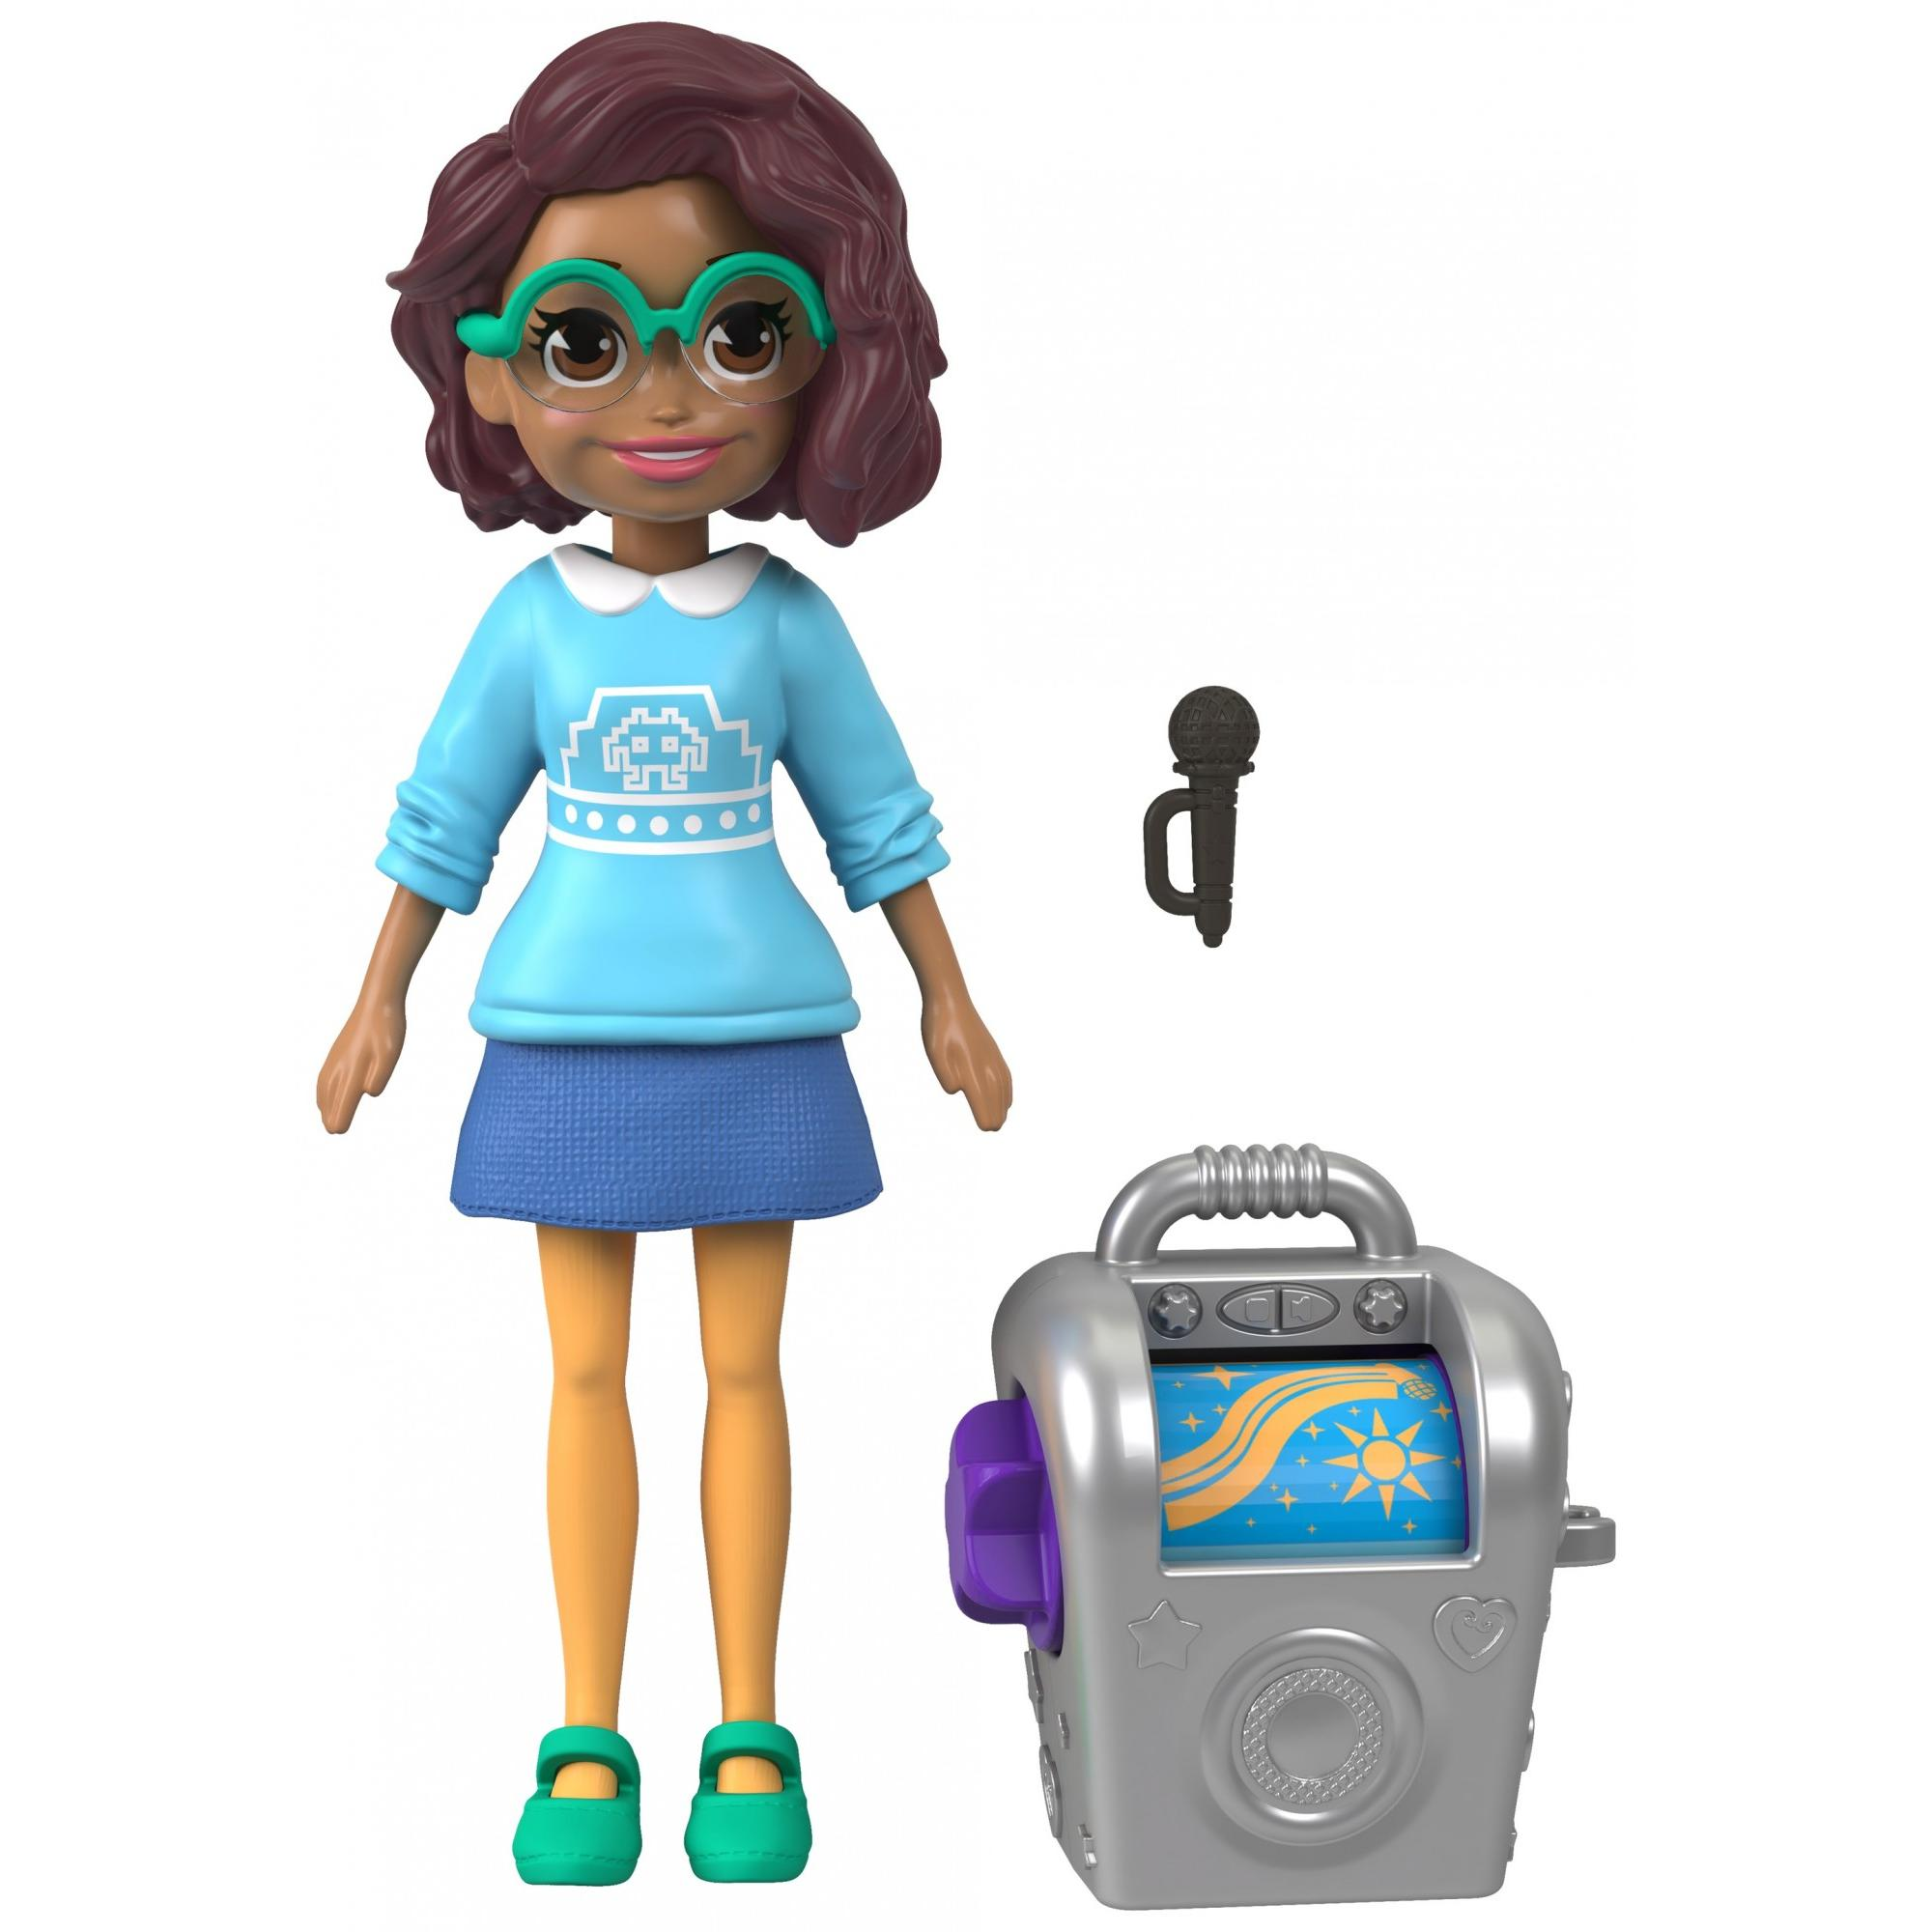 Polly Pocket Active Pose Karaoke Music Kween Shani Pose Doll with Stereo by Mattel